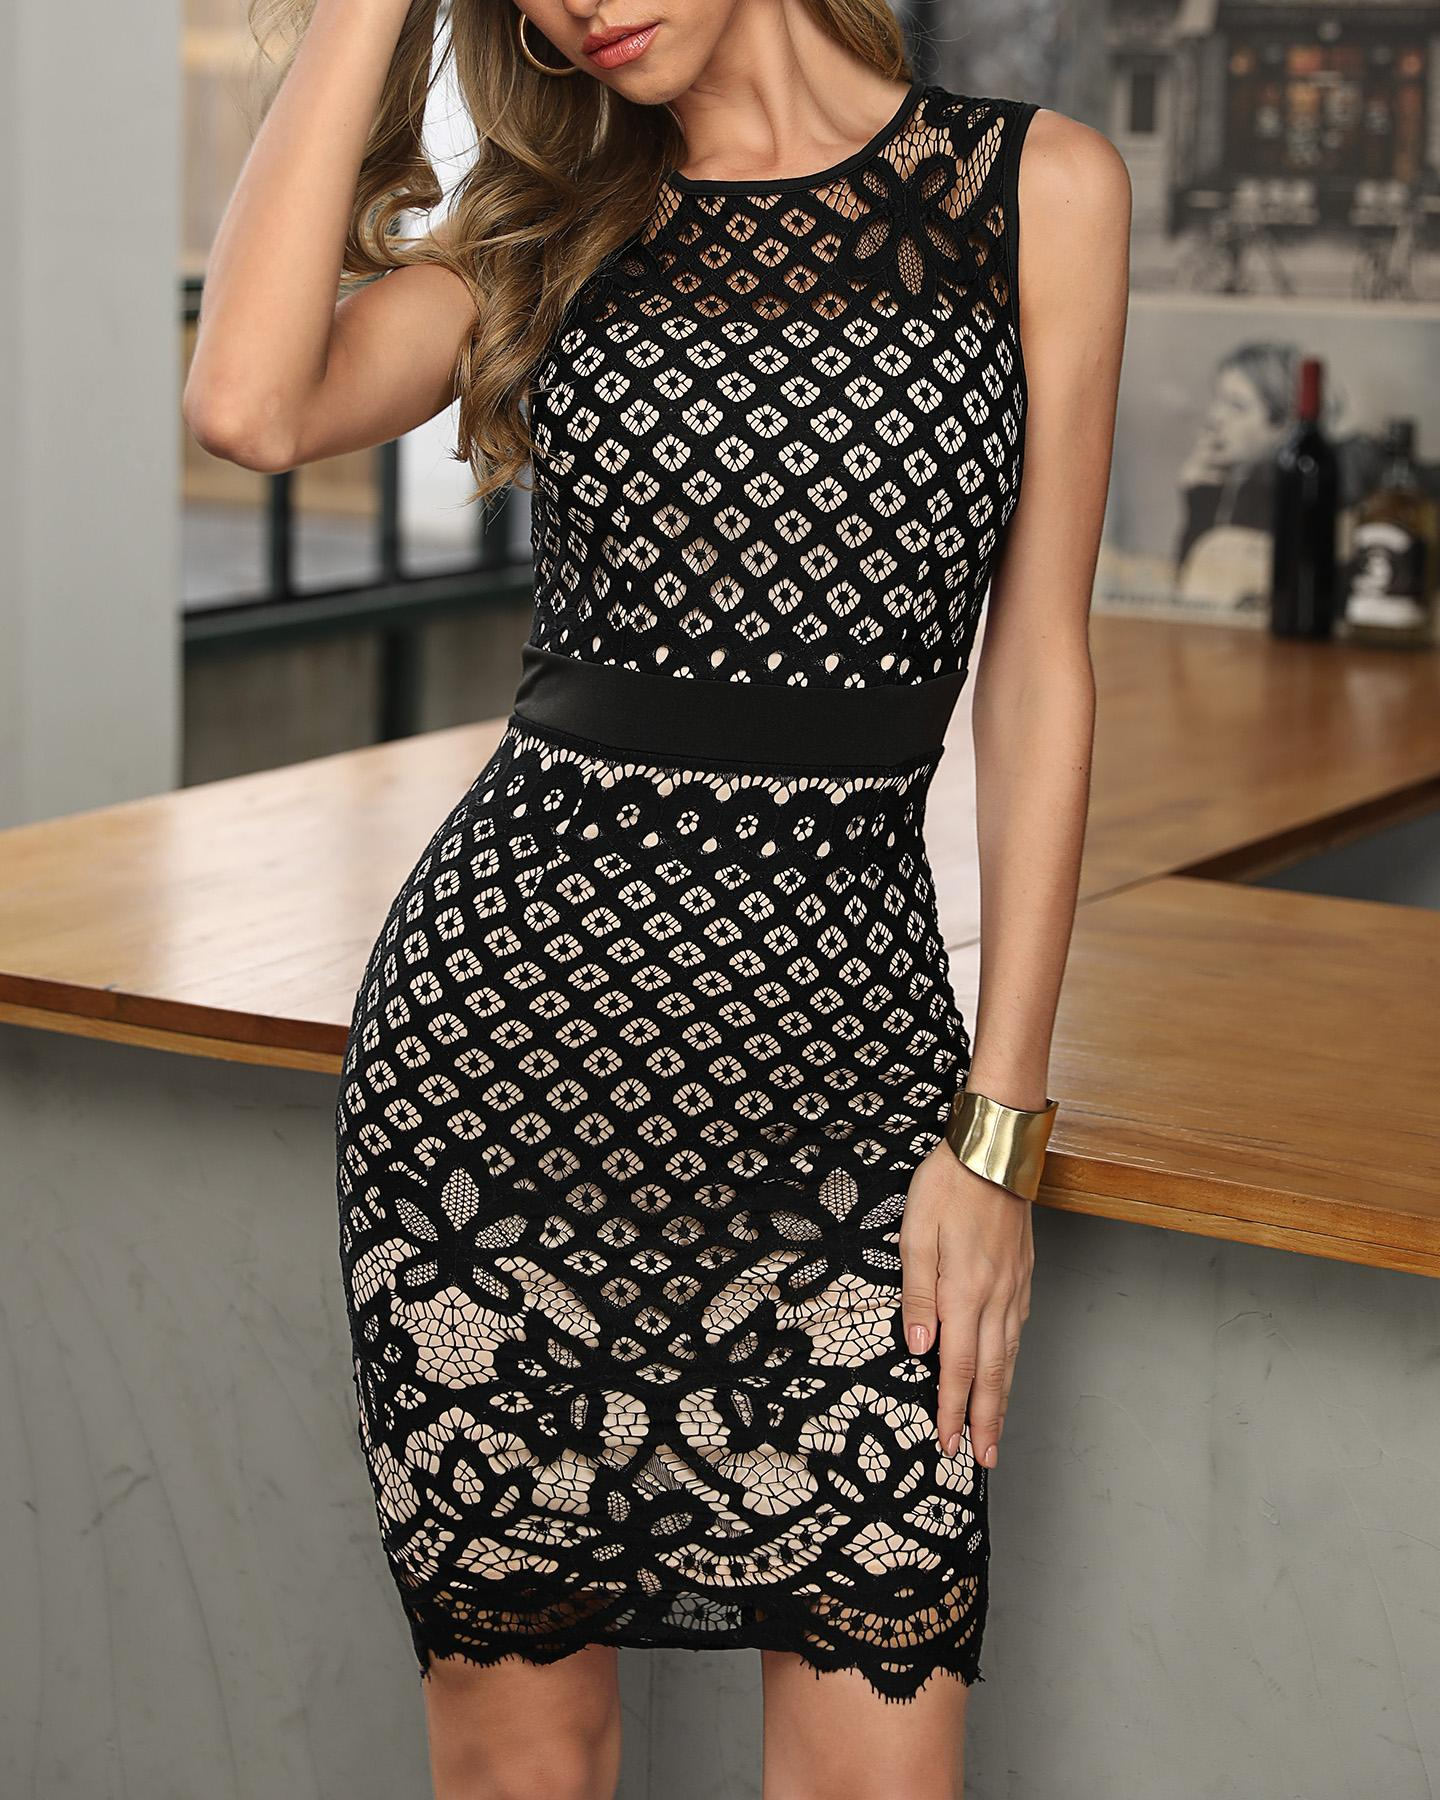 Black Hollow Out Lace Stitching Party Dress 2